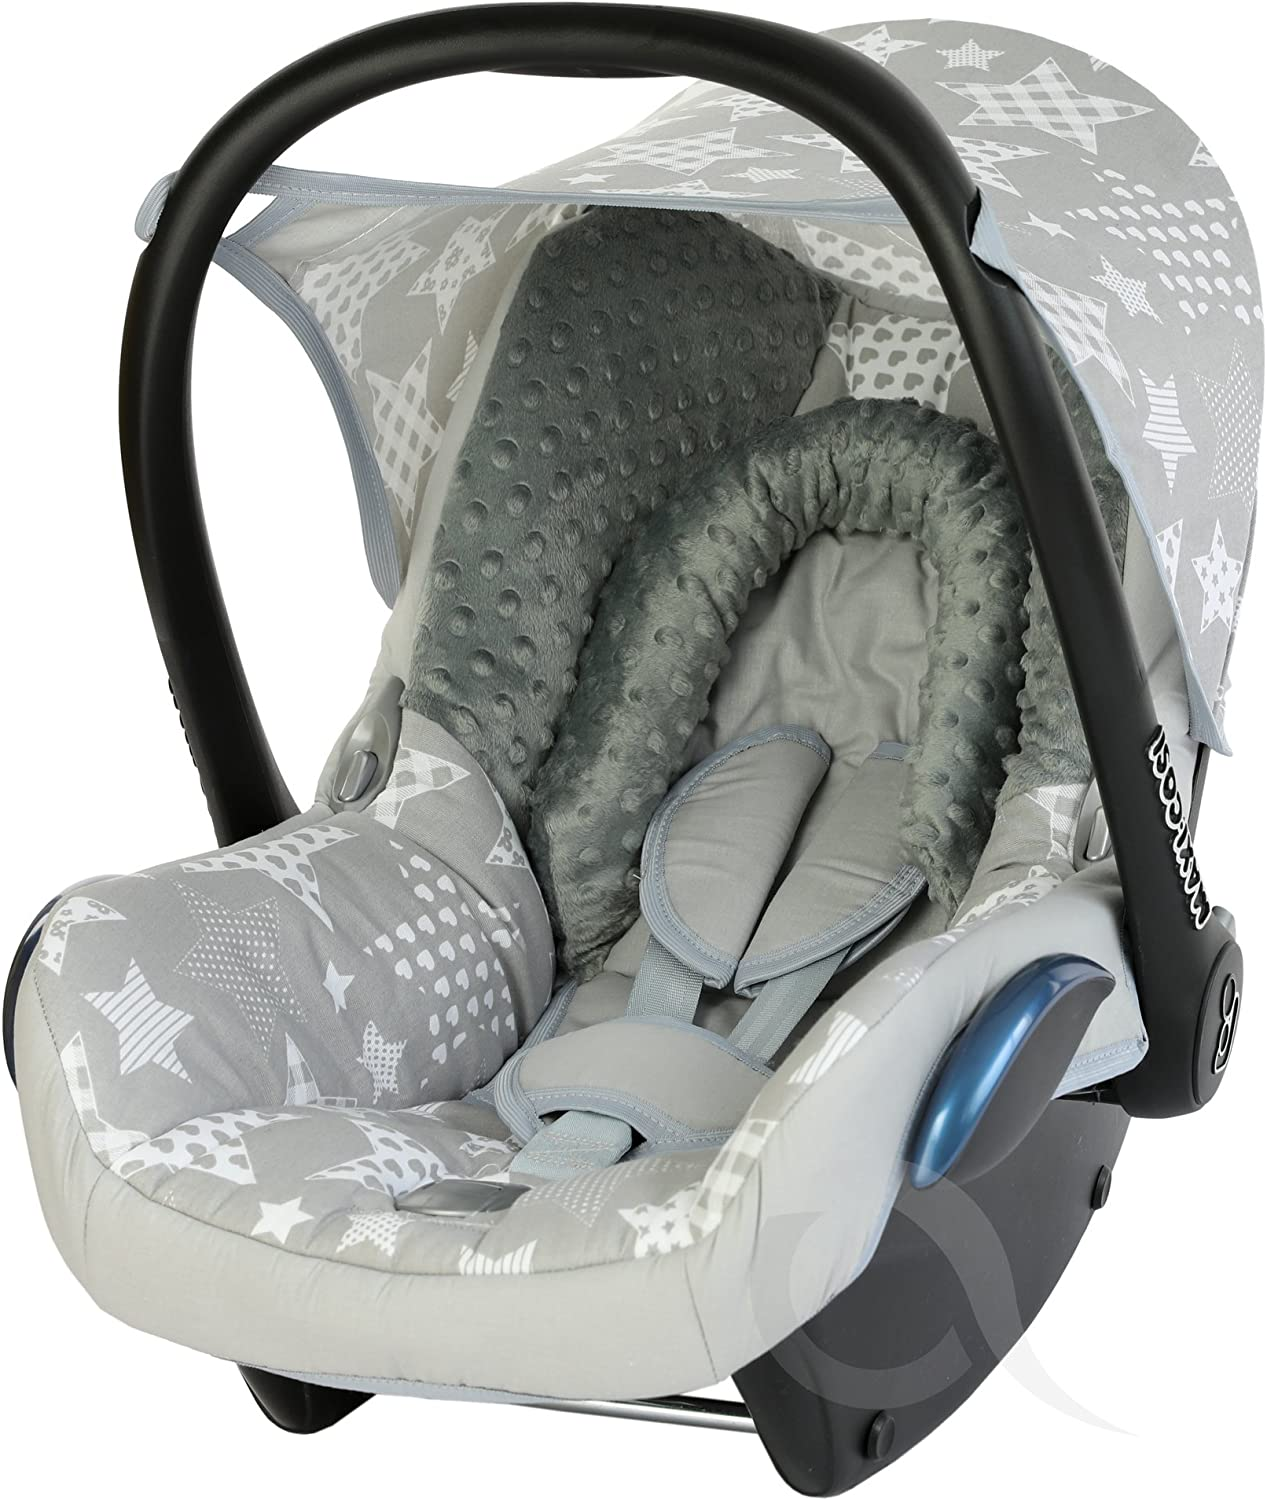 Replacement Seat Cover fits Maxi-Cosi CabrioFix Group 0 grey multistar//grey minky Infant Carrier FULL SET